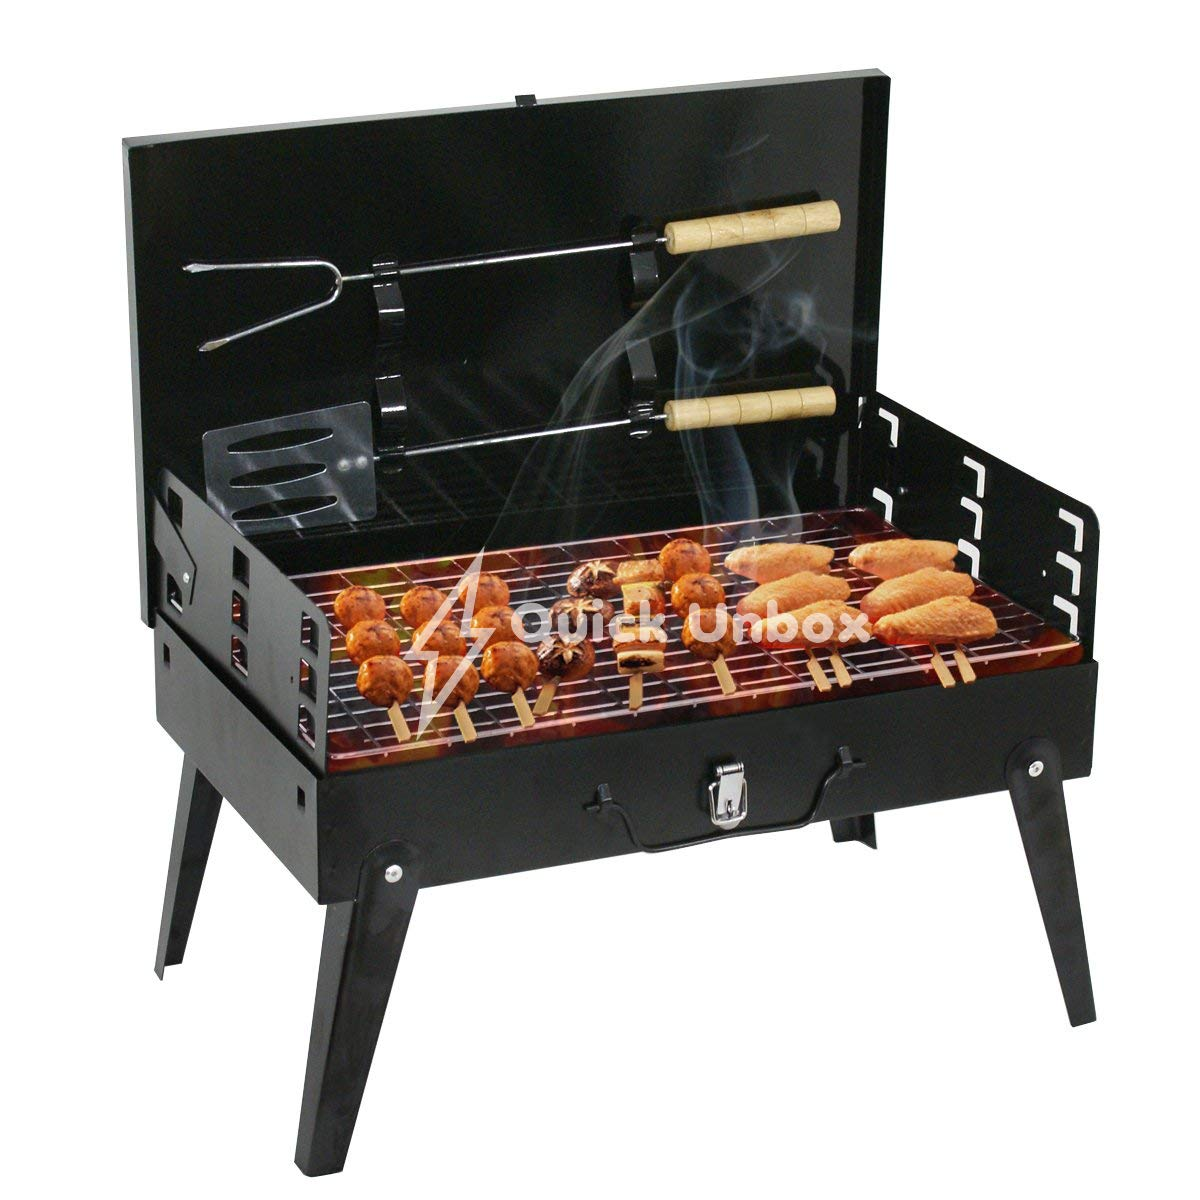 QUICK UNBOX Foldable Charcoal Barbeque